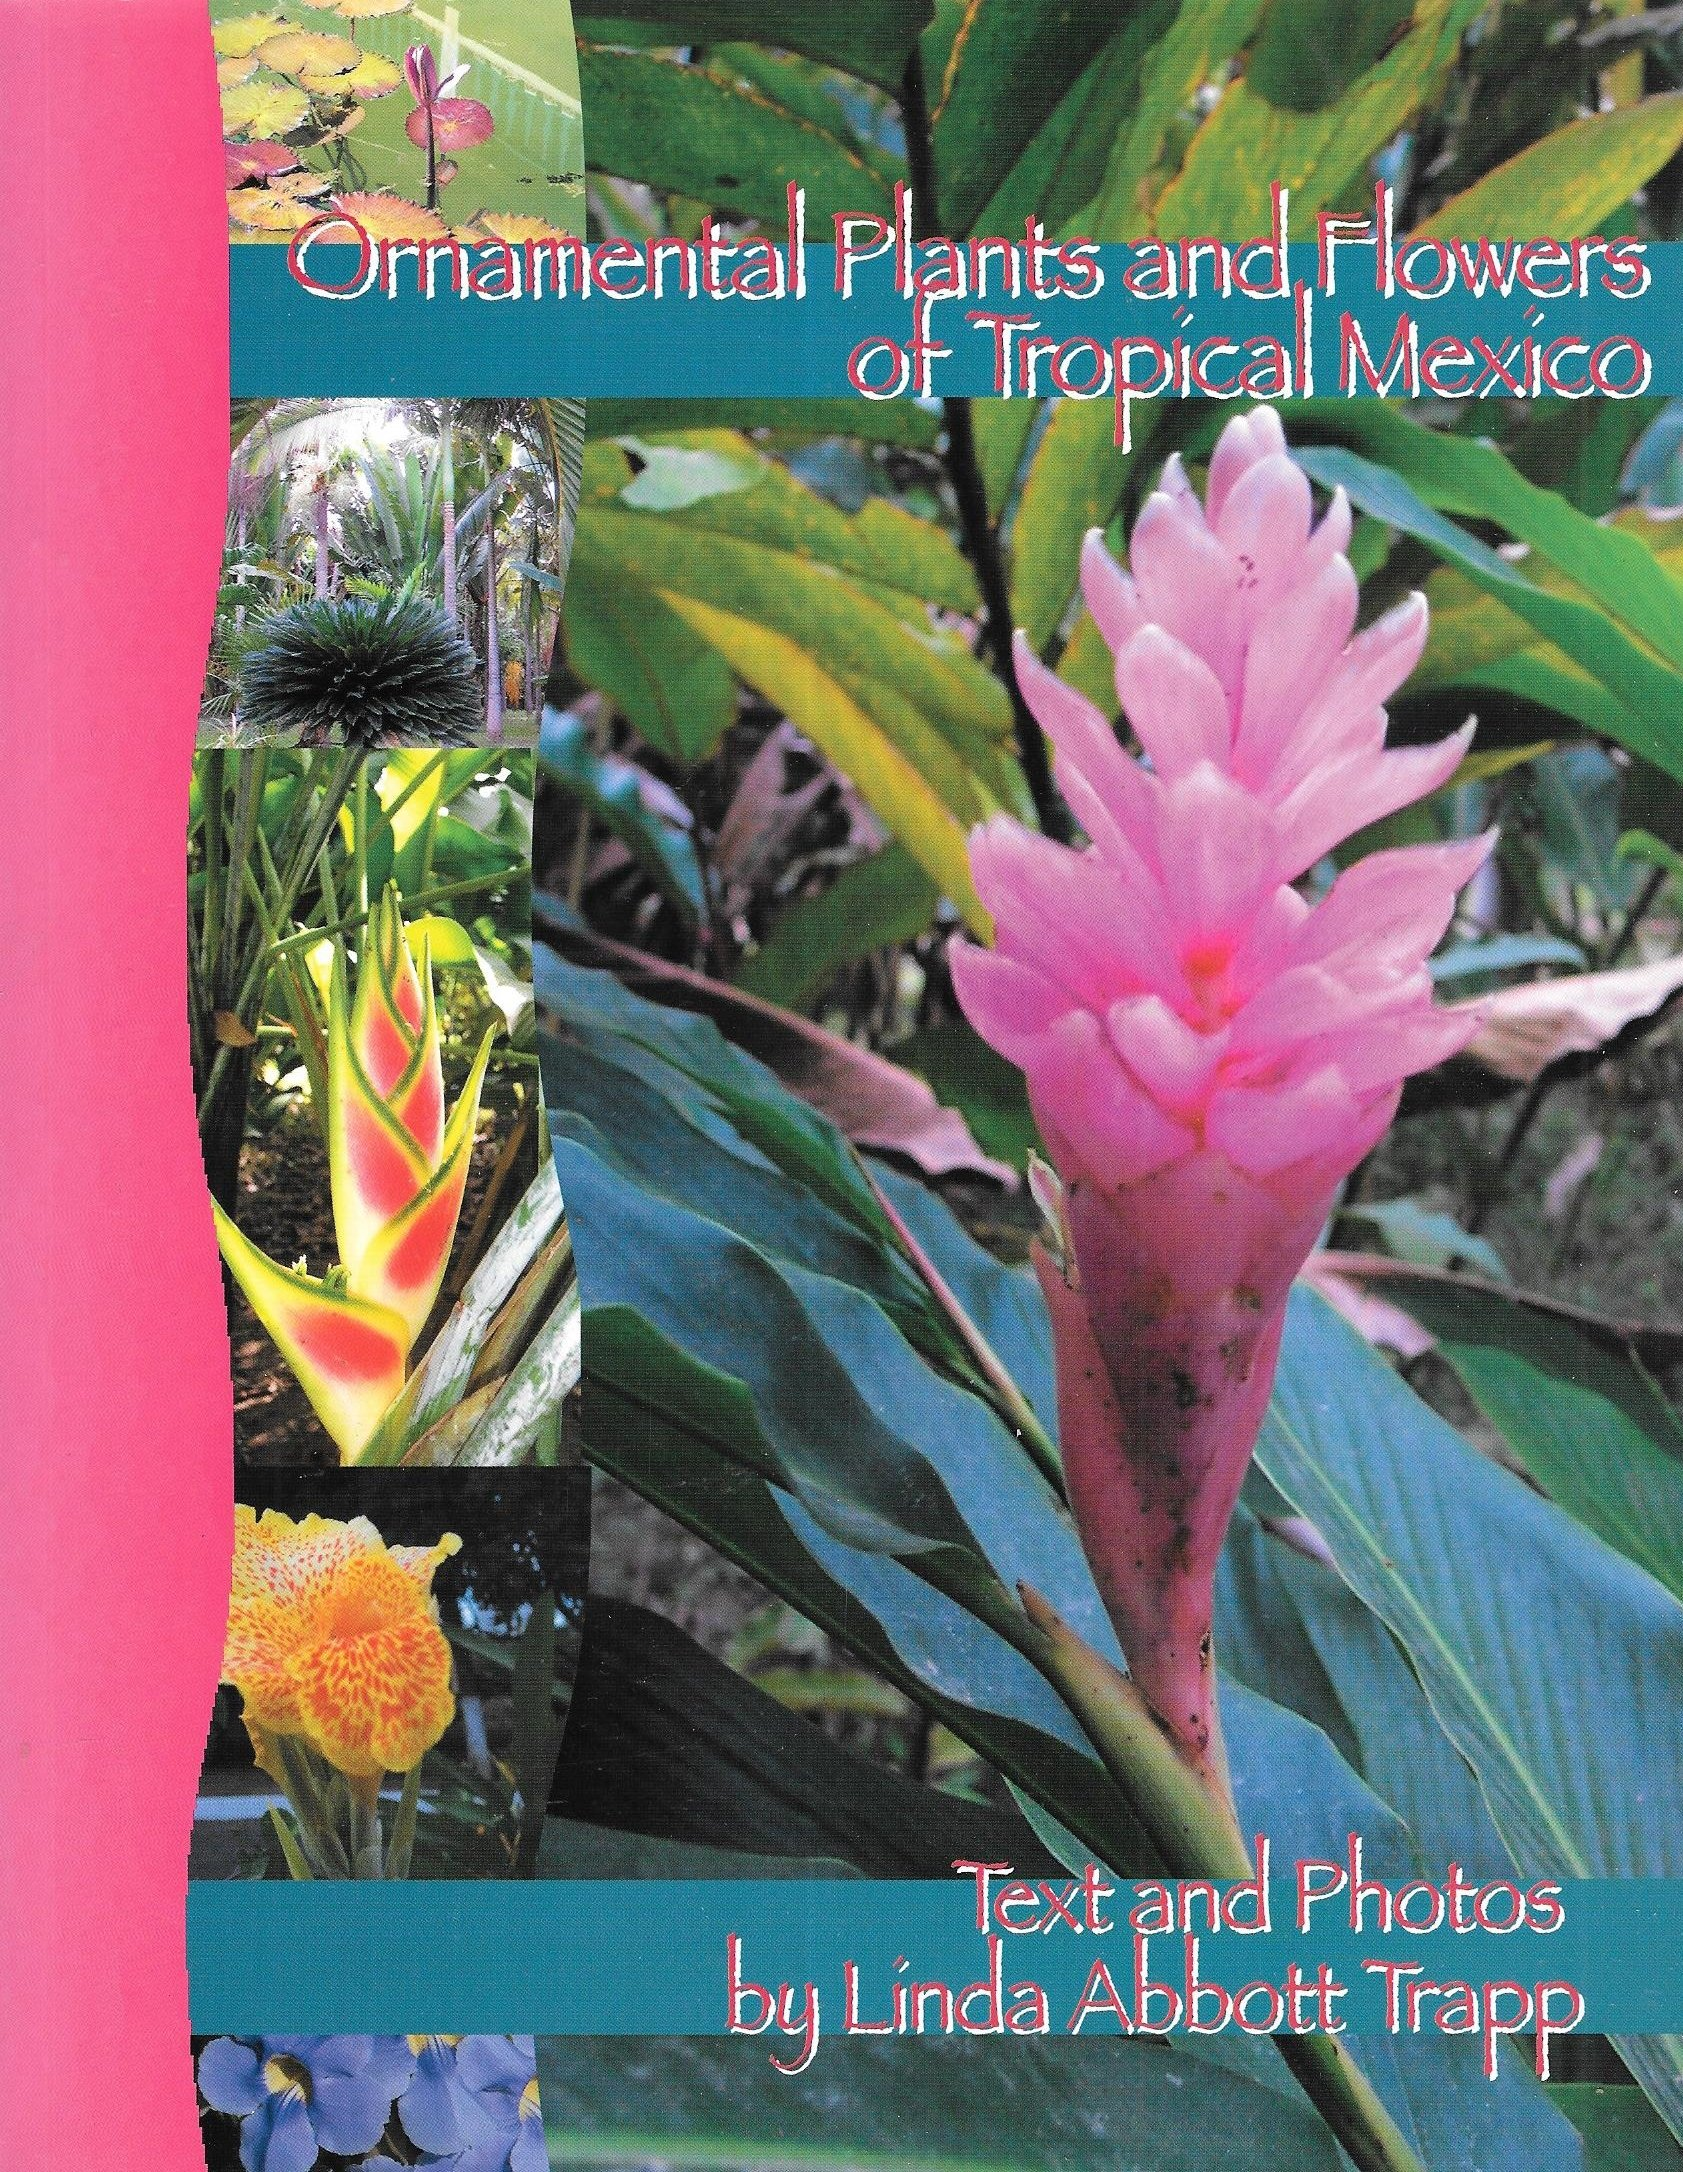 Download Ornamental Plants and Flowers of Tropical Mexico [Paperback] [2006] (Author) Linda Abbott Trapp pdf epub